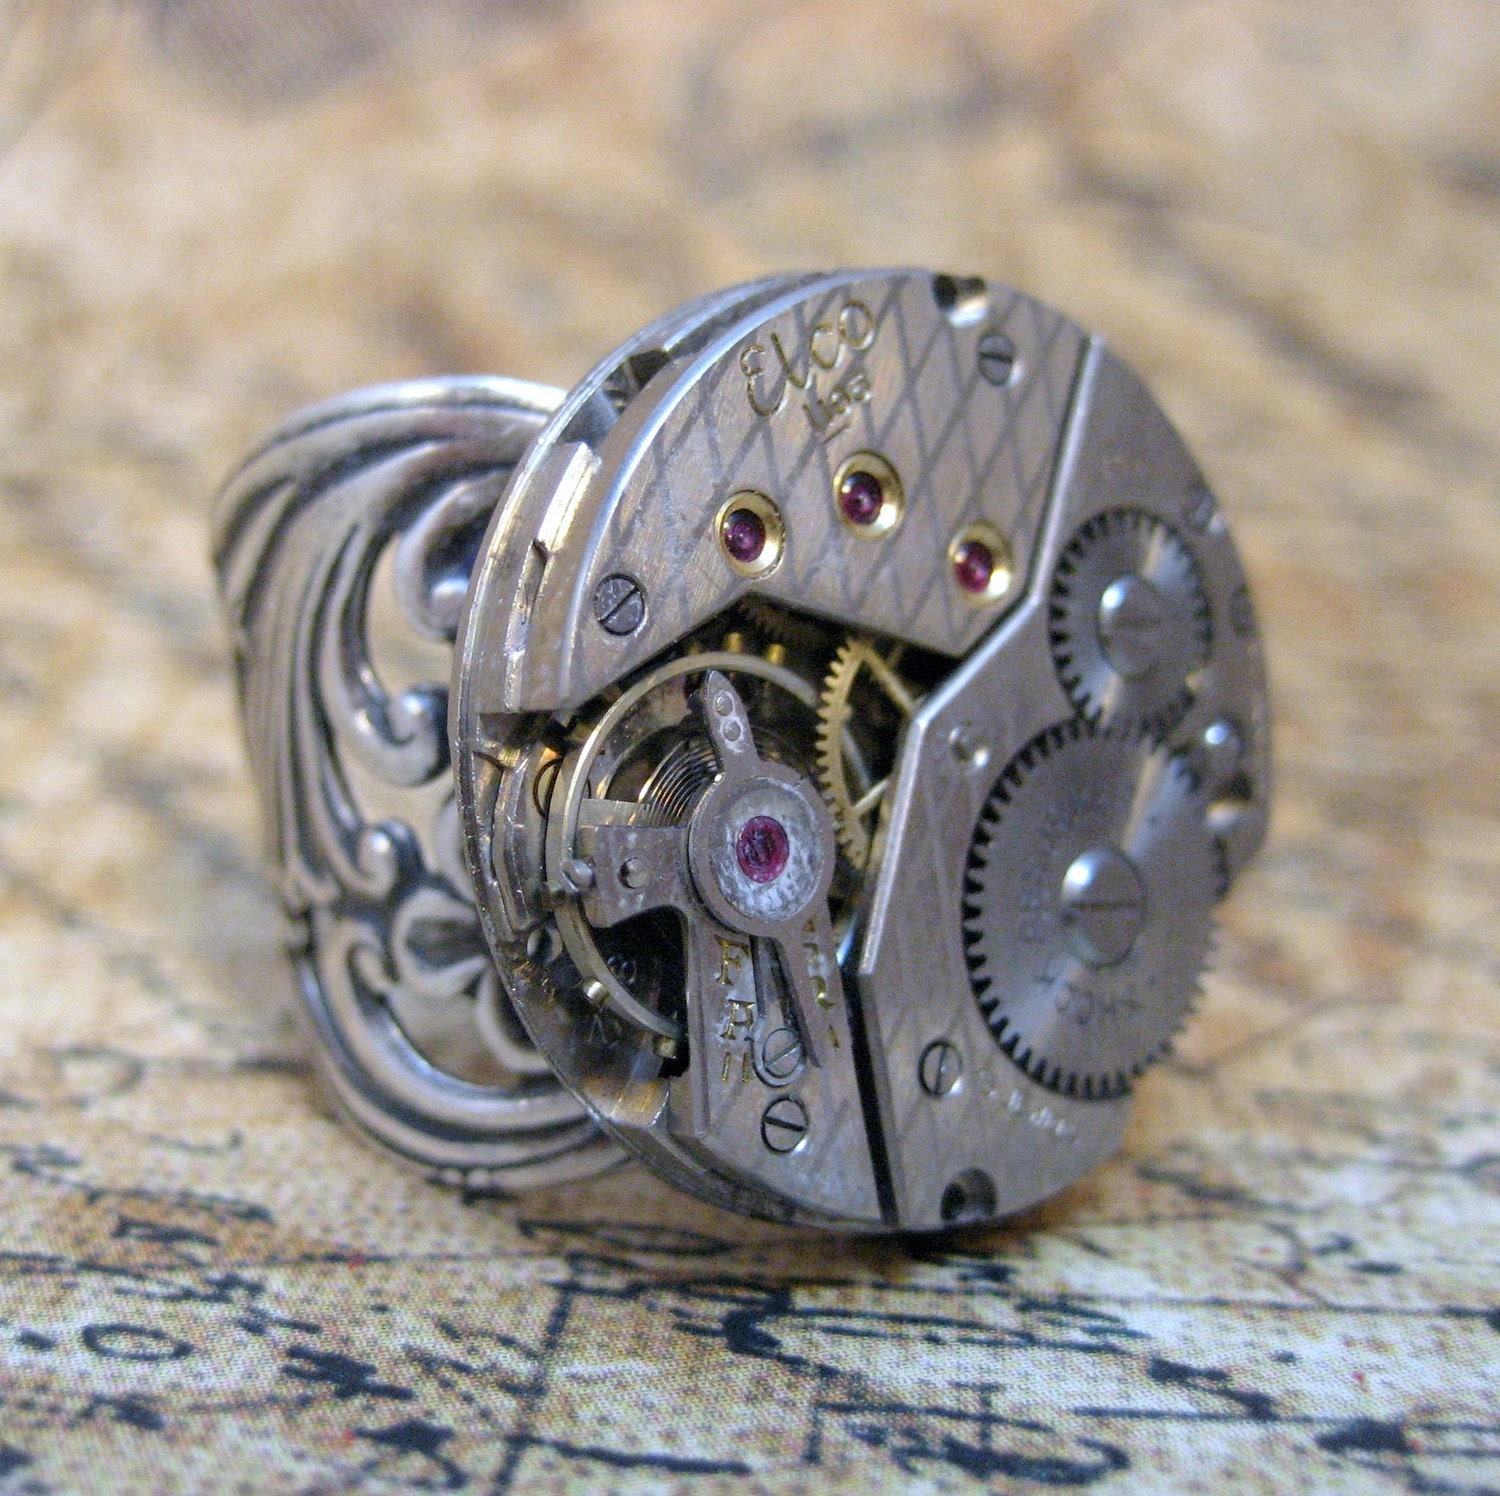 Argyle Steampunk Ring - Neo Victorian Antiqued Silver Tone Filigree - Vintage Repurposed Watch Movement - Hand Made and Designed by A Second Time